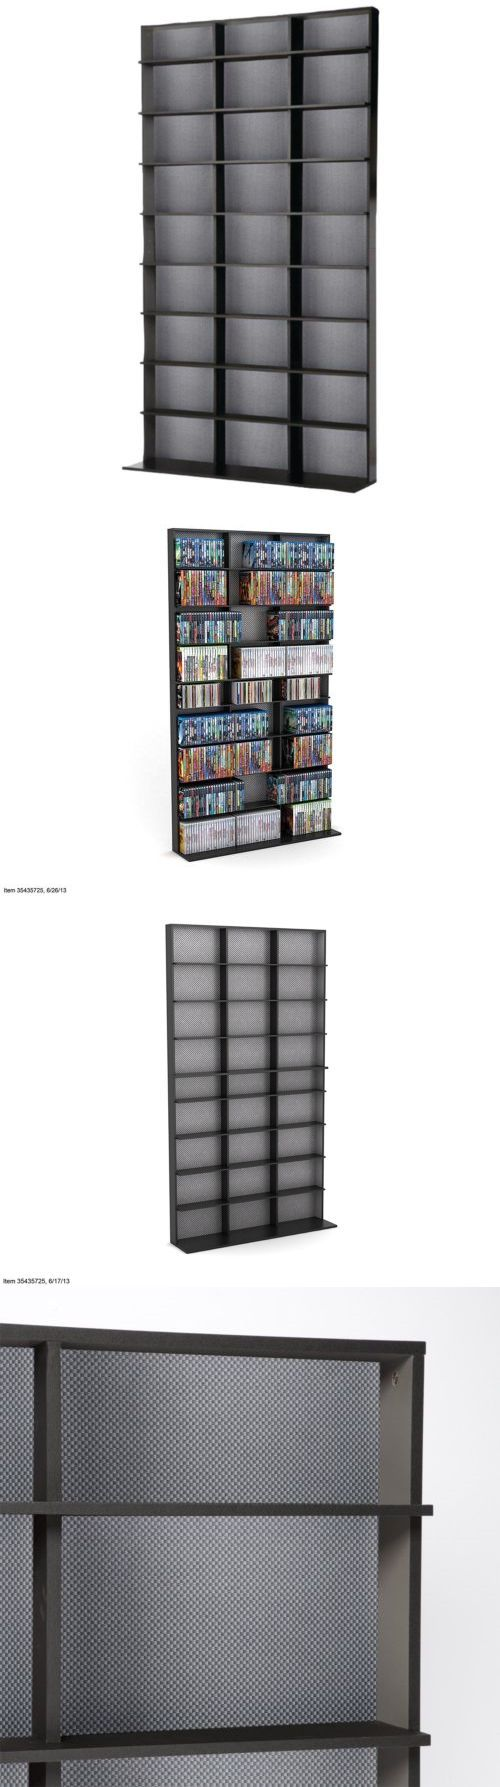 CD and Video Racks 22653: New Home Storage Cabinet Media Tower Elite Cd Dvd Rack 9 Fixed Shelf Large Black -> BUY IT NOW ONLY: $77.04 on eBay!